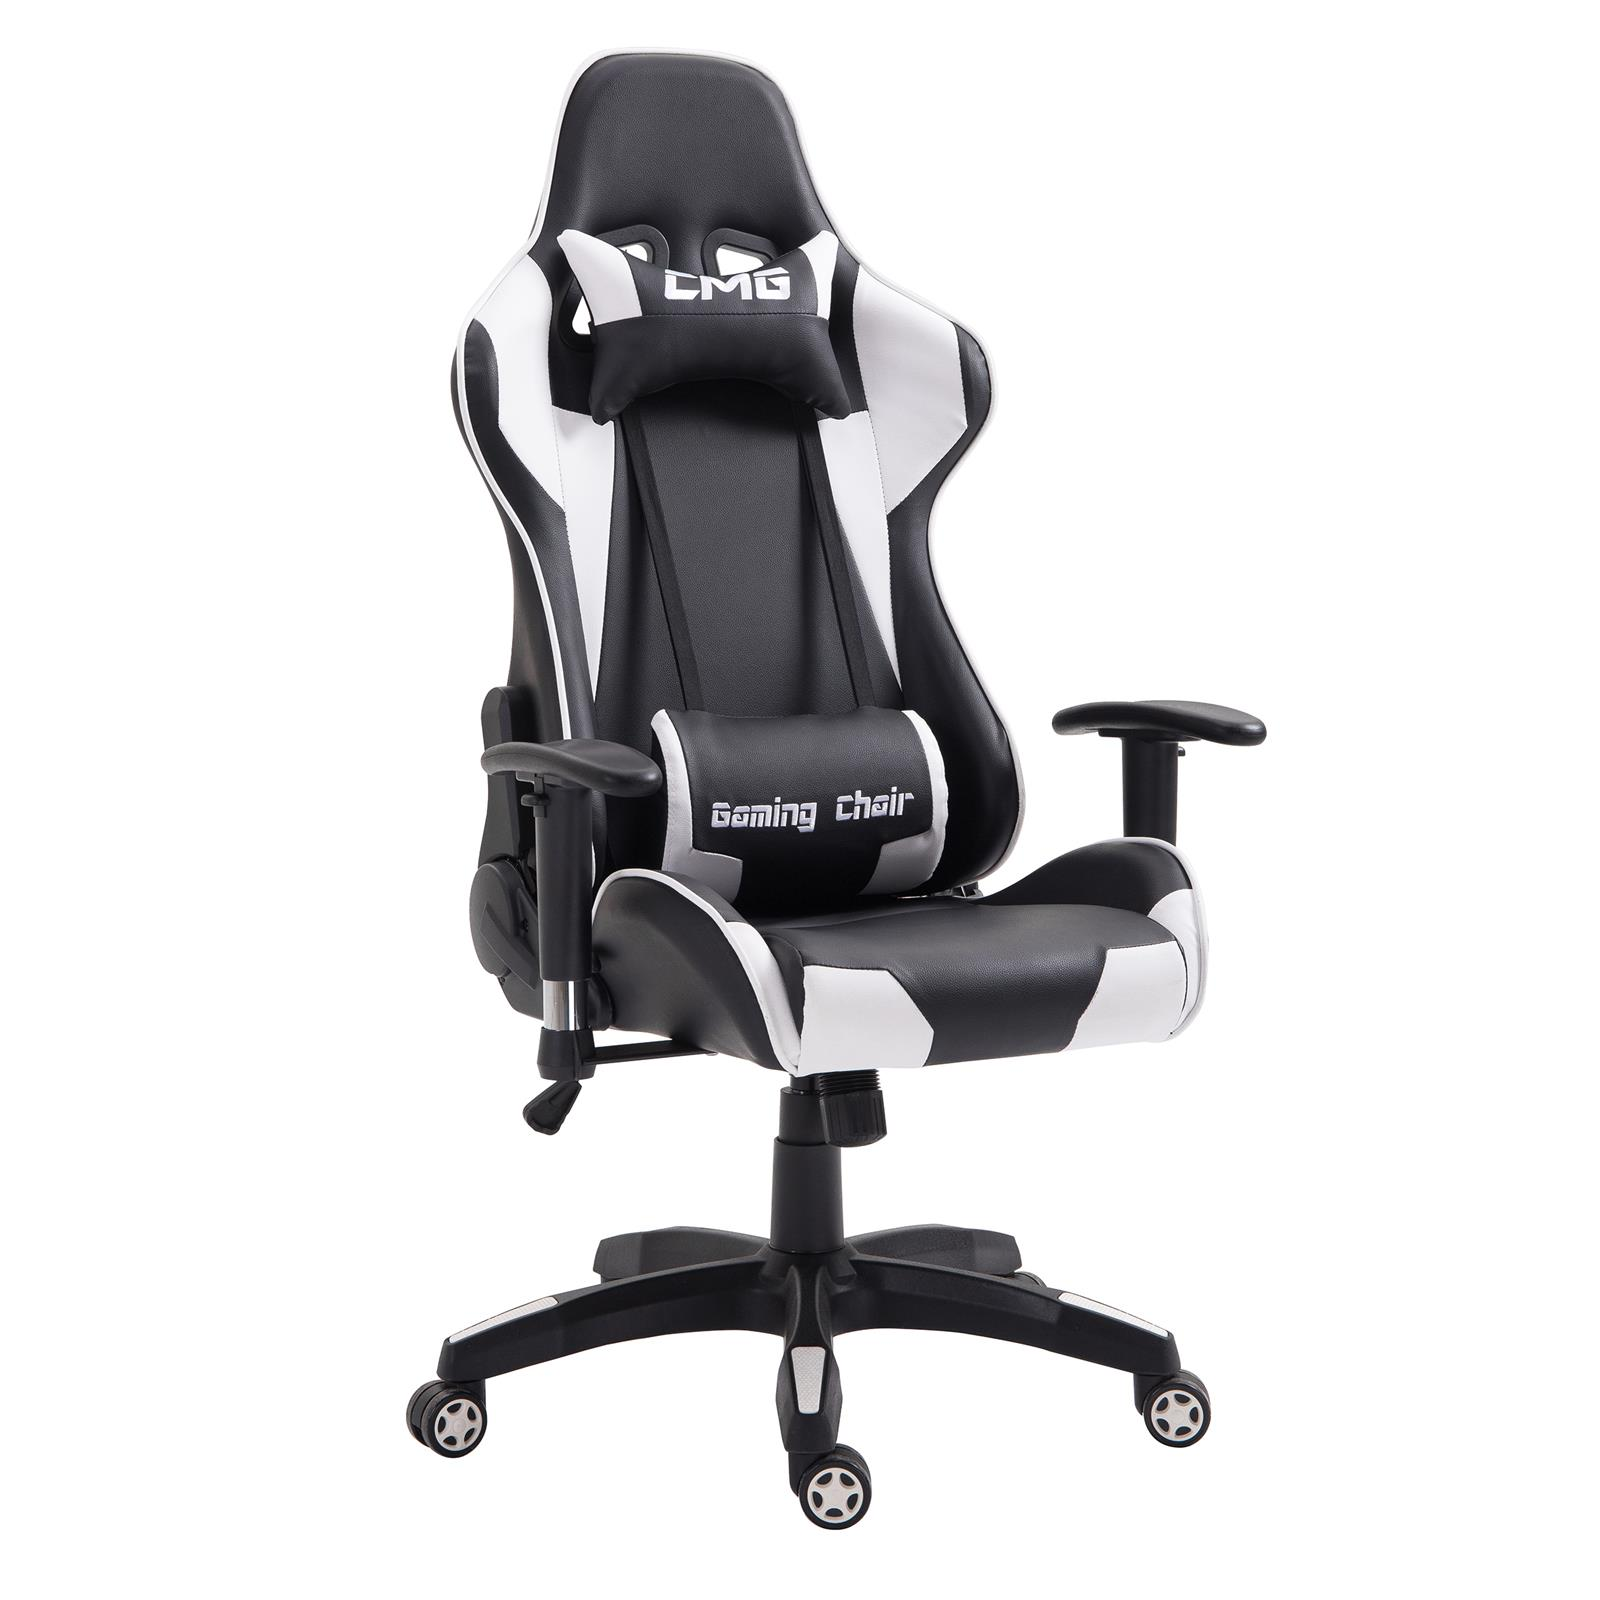 fauteuil de bureau gaming noir et blanc mobil meubles. Black Bedroom Furniture Sets. Home Design Ideas